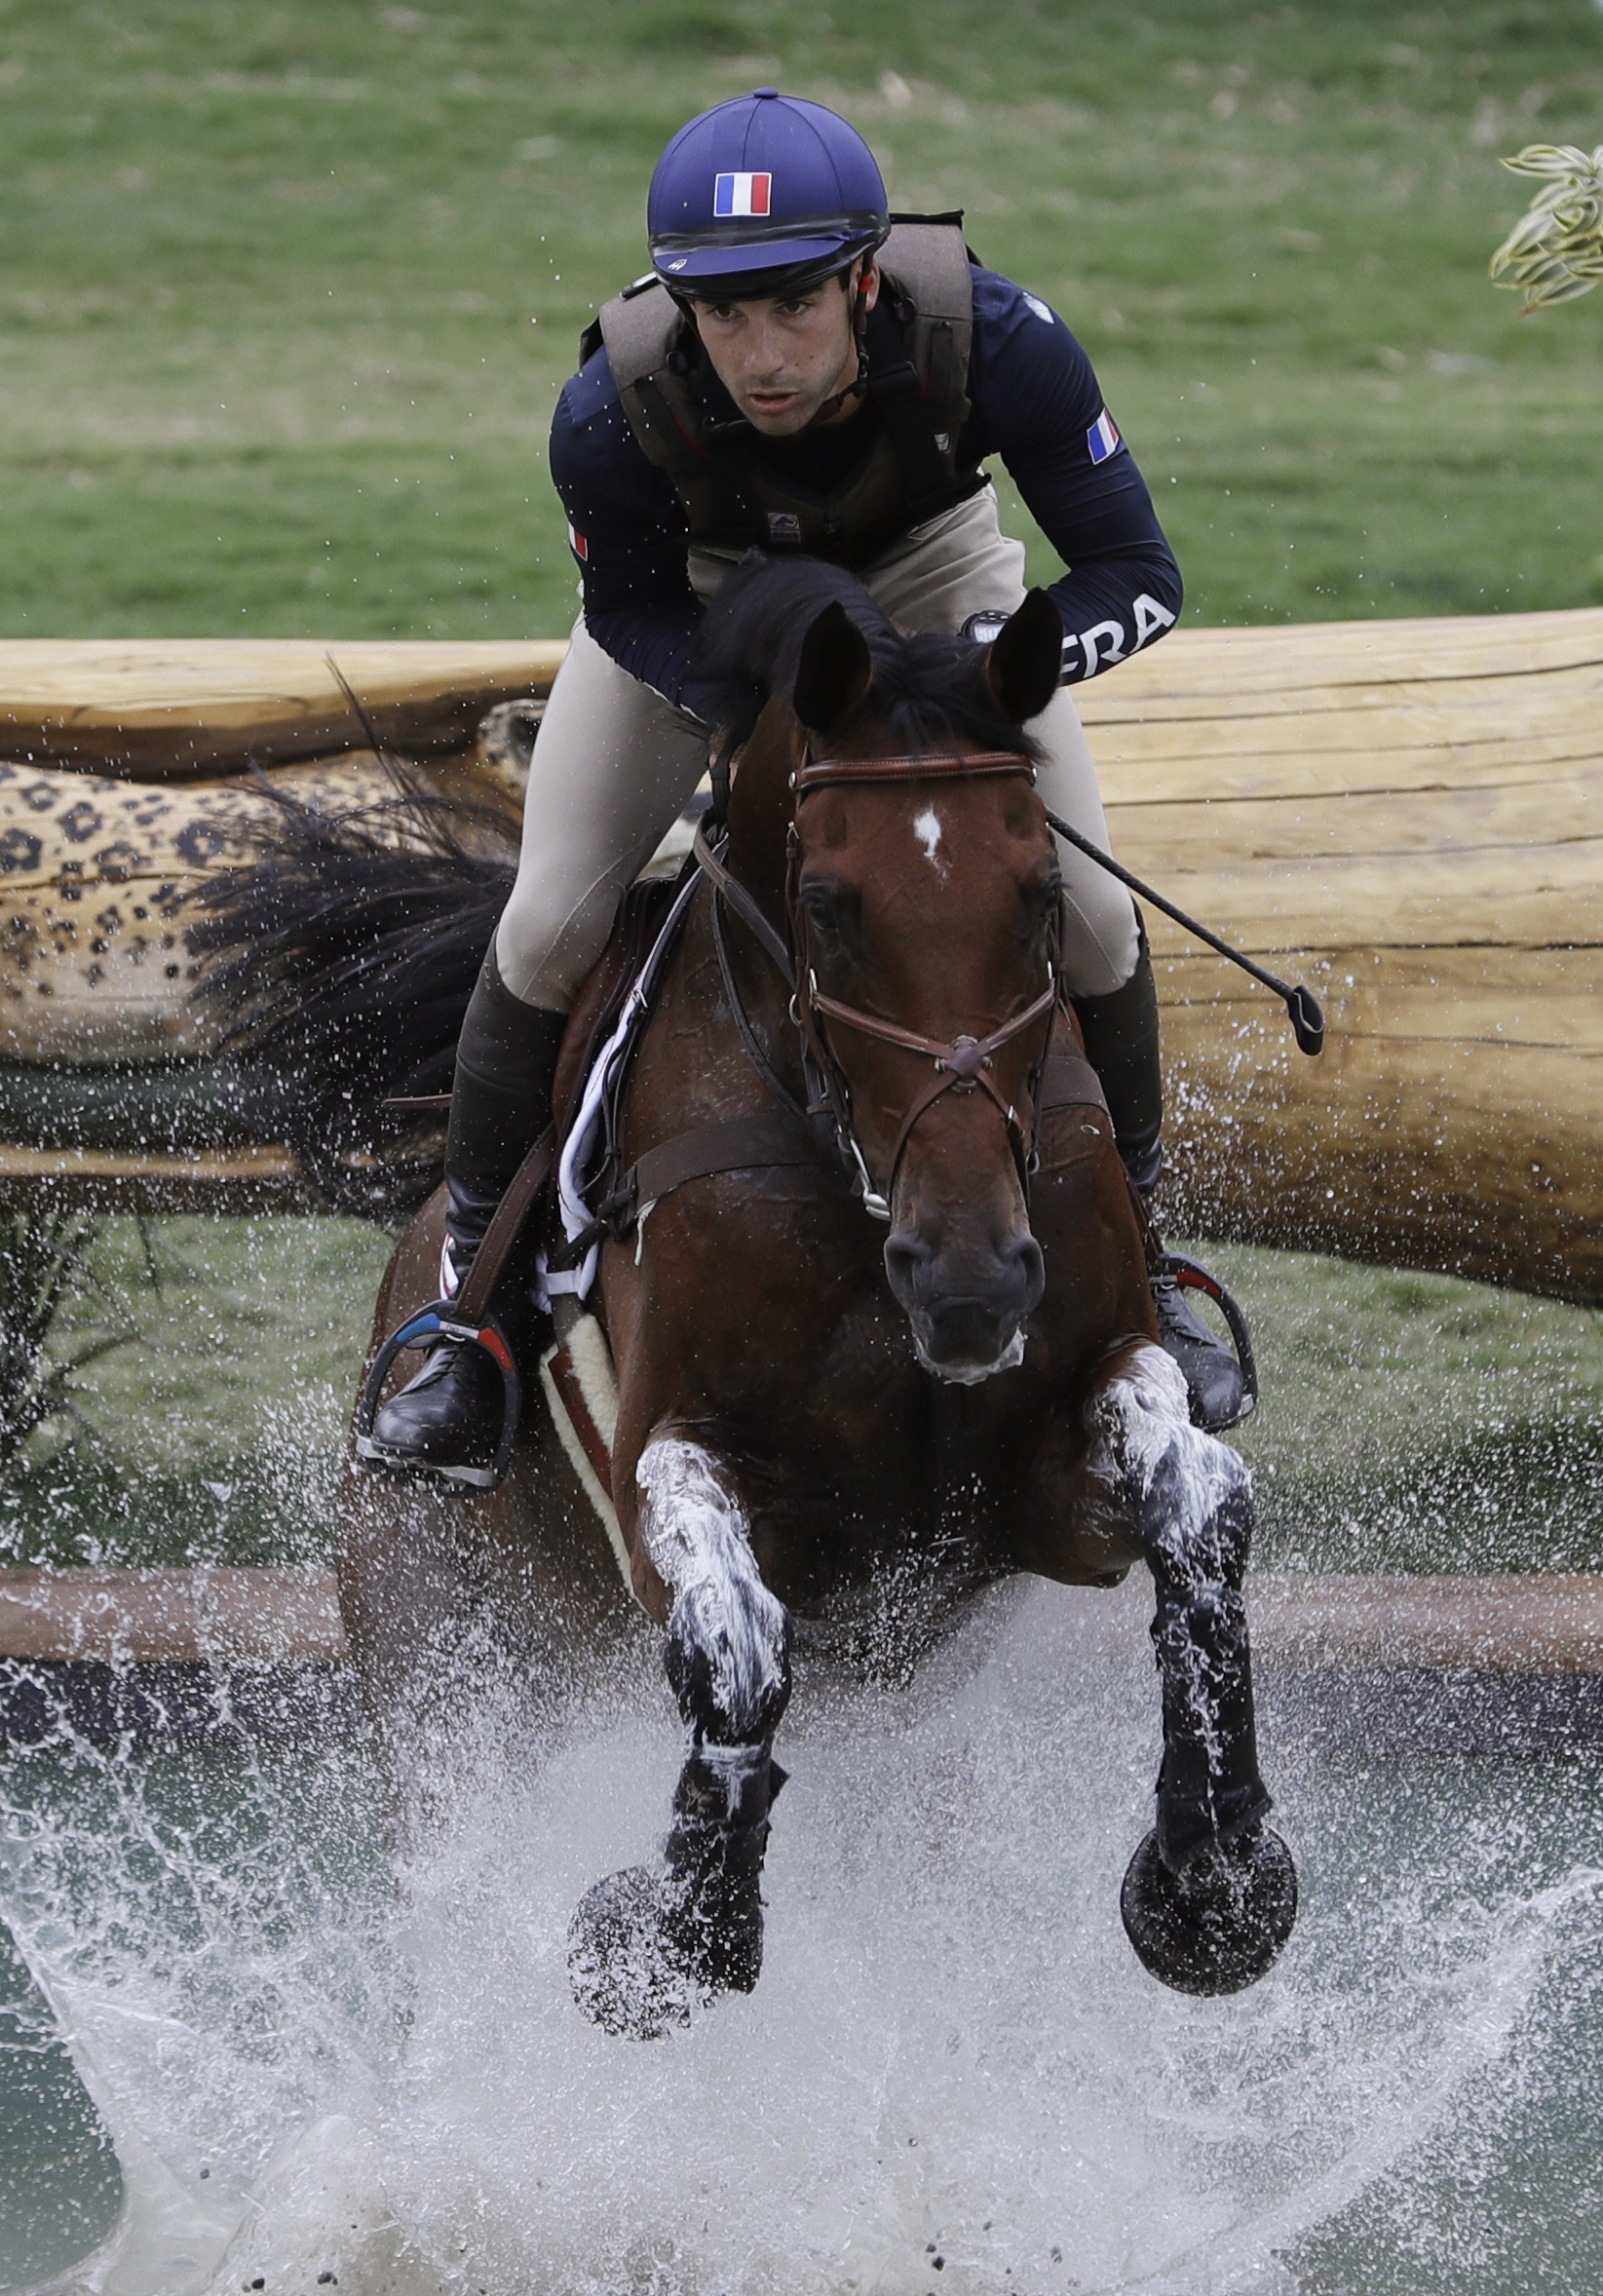 Astier Nicolas, of France, competes on Piaf de b'Neville in the equestrian eventing cross country phase at the 2016 Summer Olympics in Rio de Janeiro, Brazil, Monday, Aug. 8, 2016. (AP Photo/John Locher)